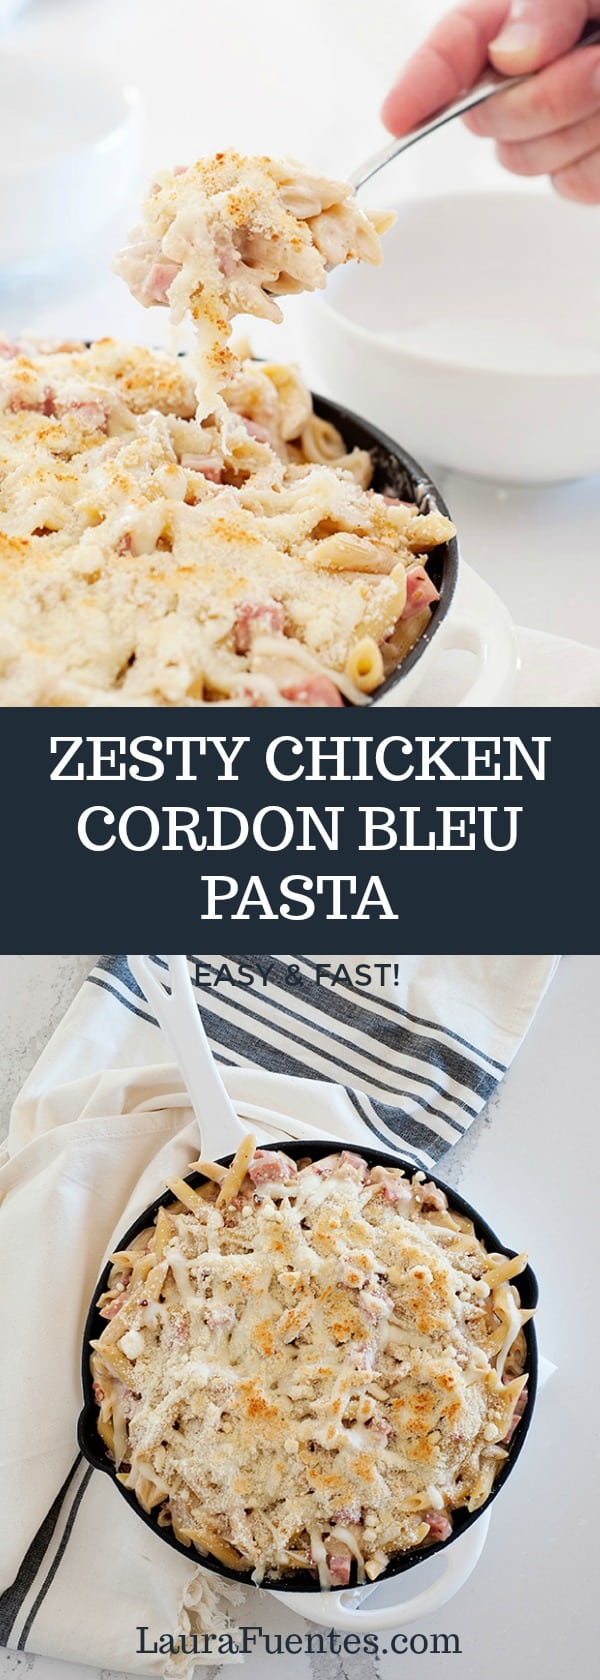 Easy Zesty Chicken Cordon Bleu Pasta that has a little added kick everyone will love.